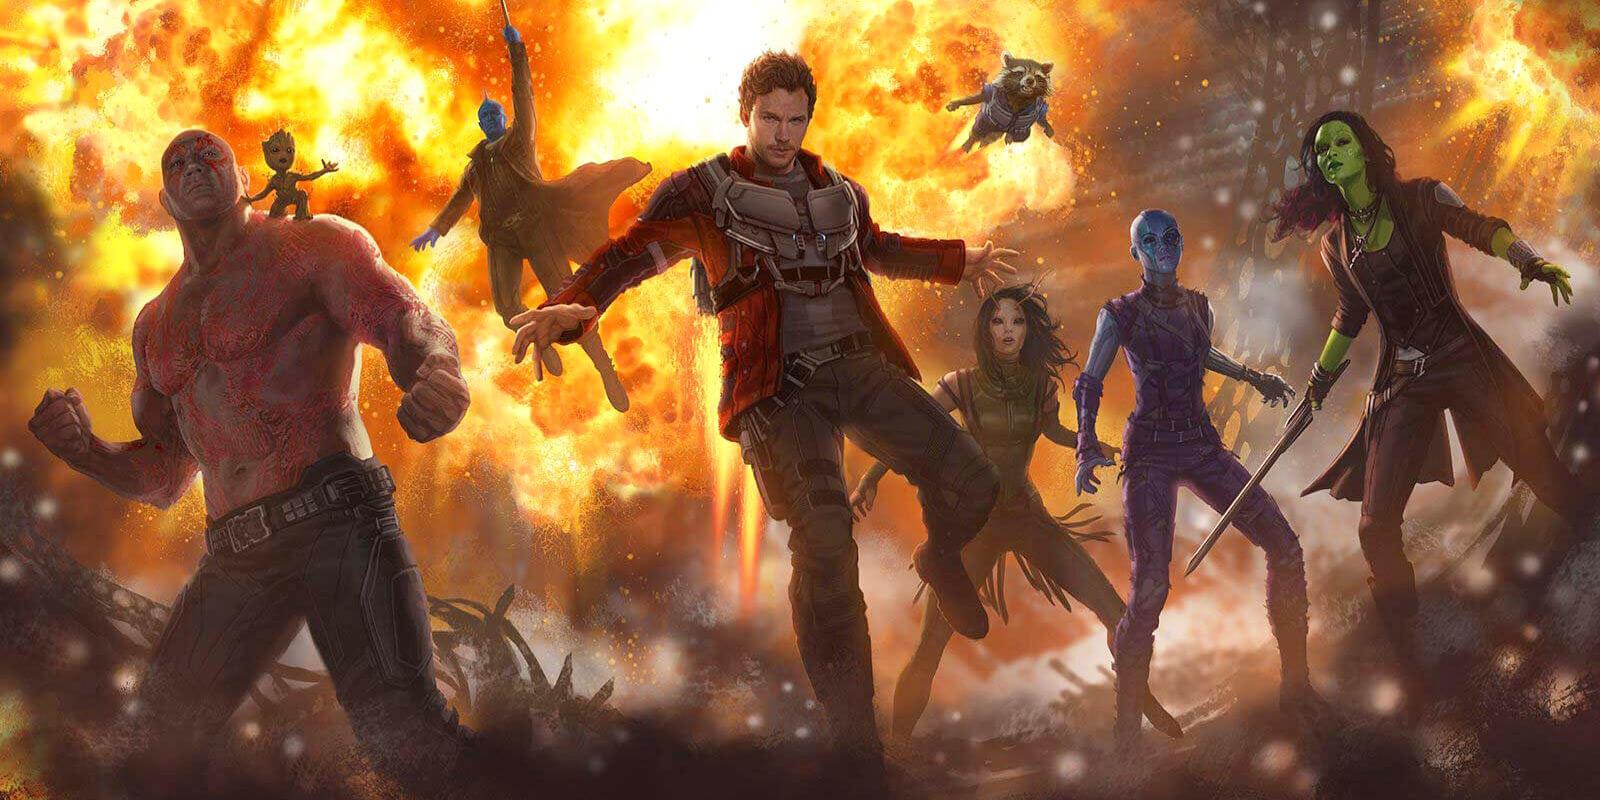 Guardians of the Galaxy Star Shares New Behind The Scenes Photo